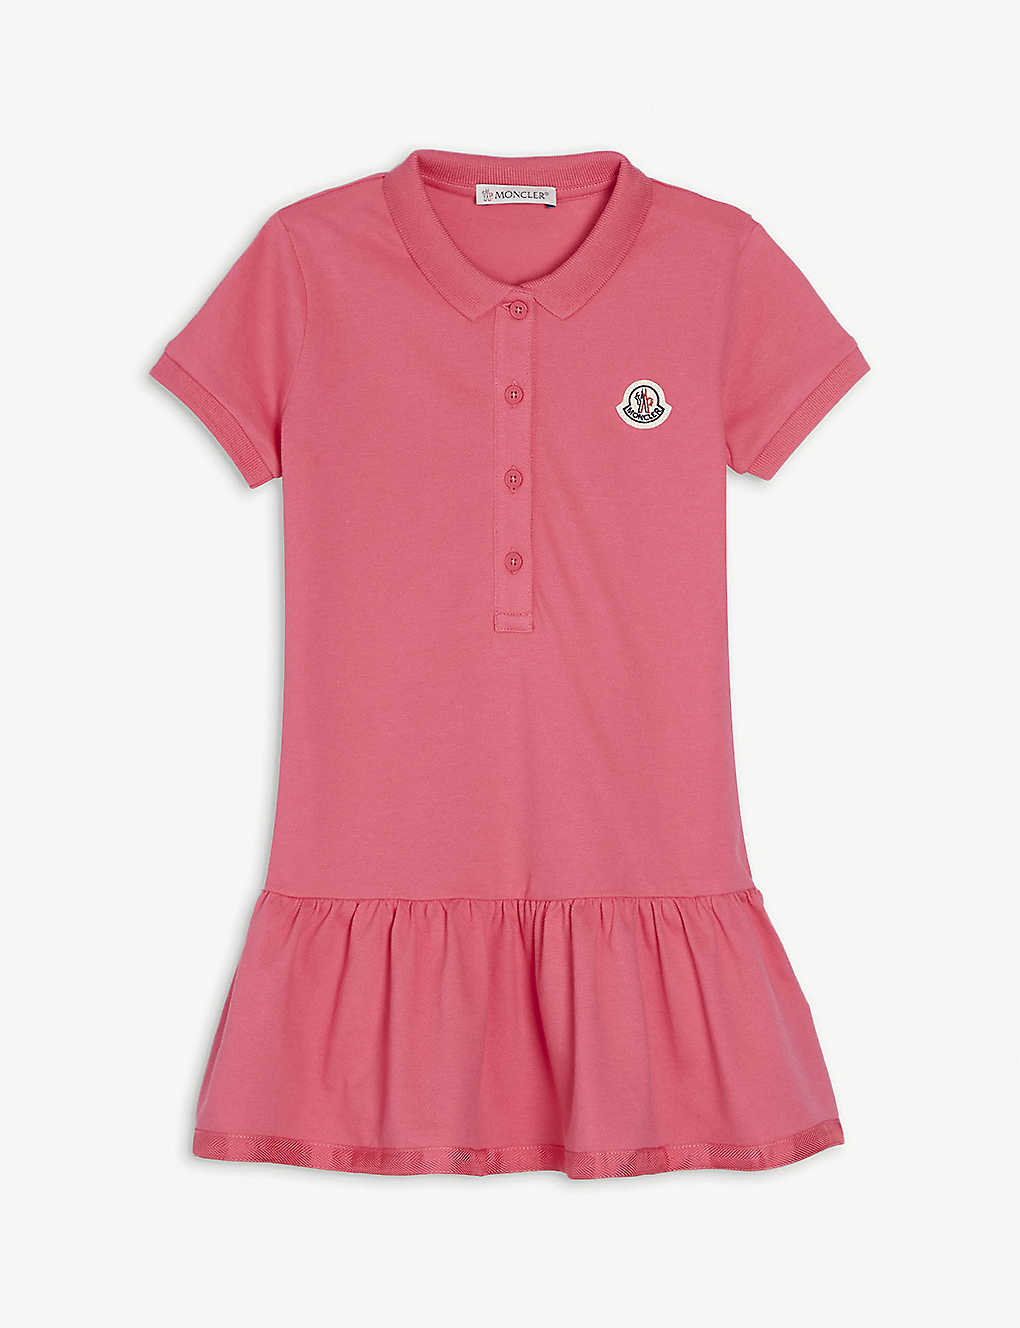 MONCLER: Frilled skirt cotton polo dress 4-14 years